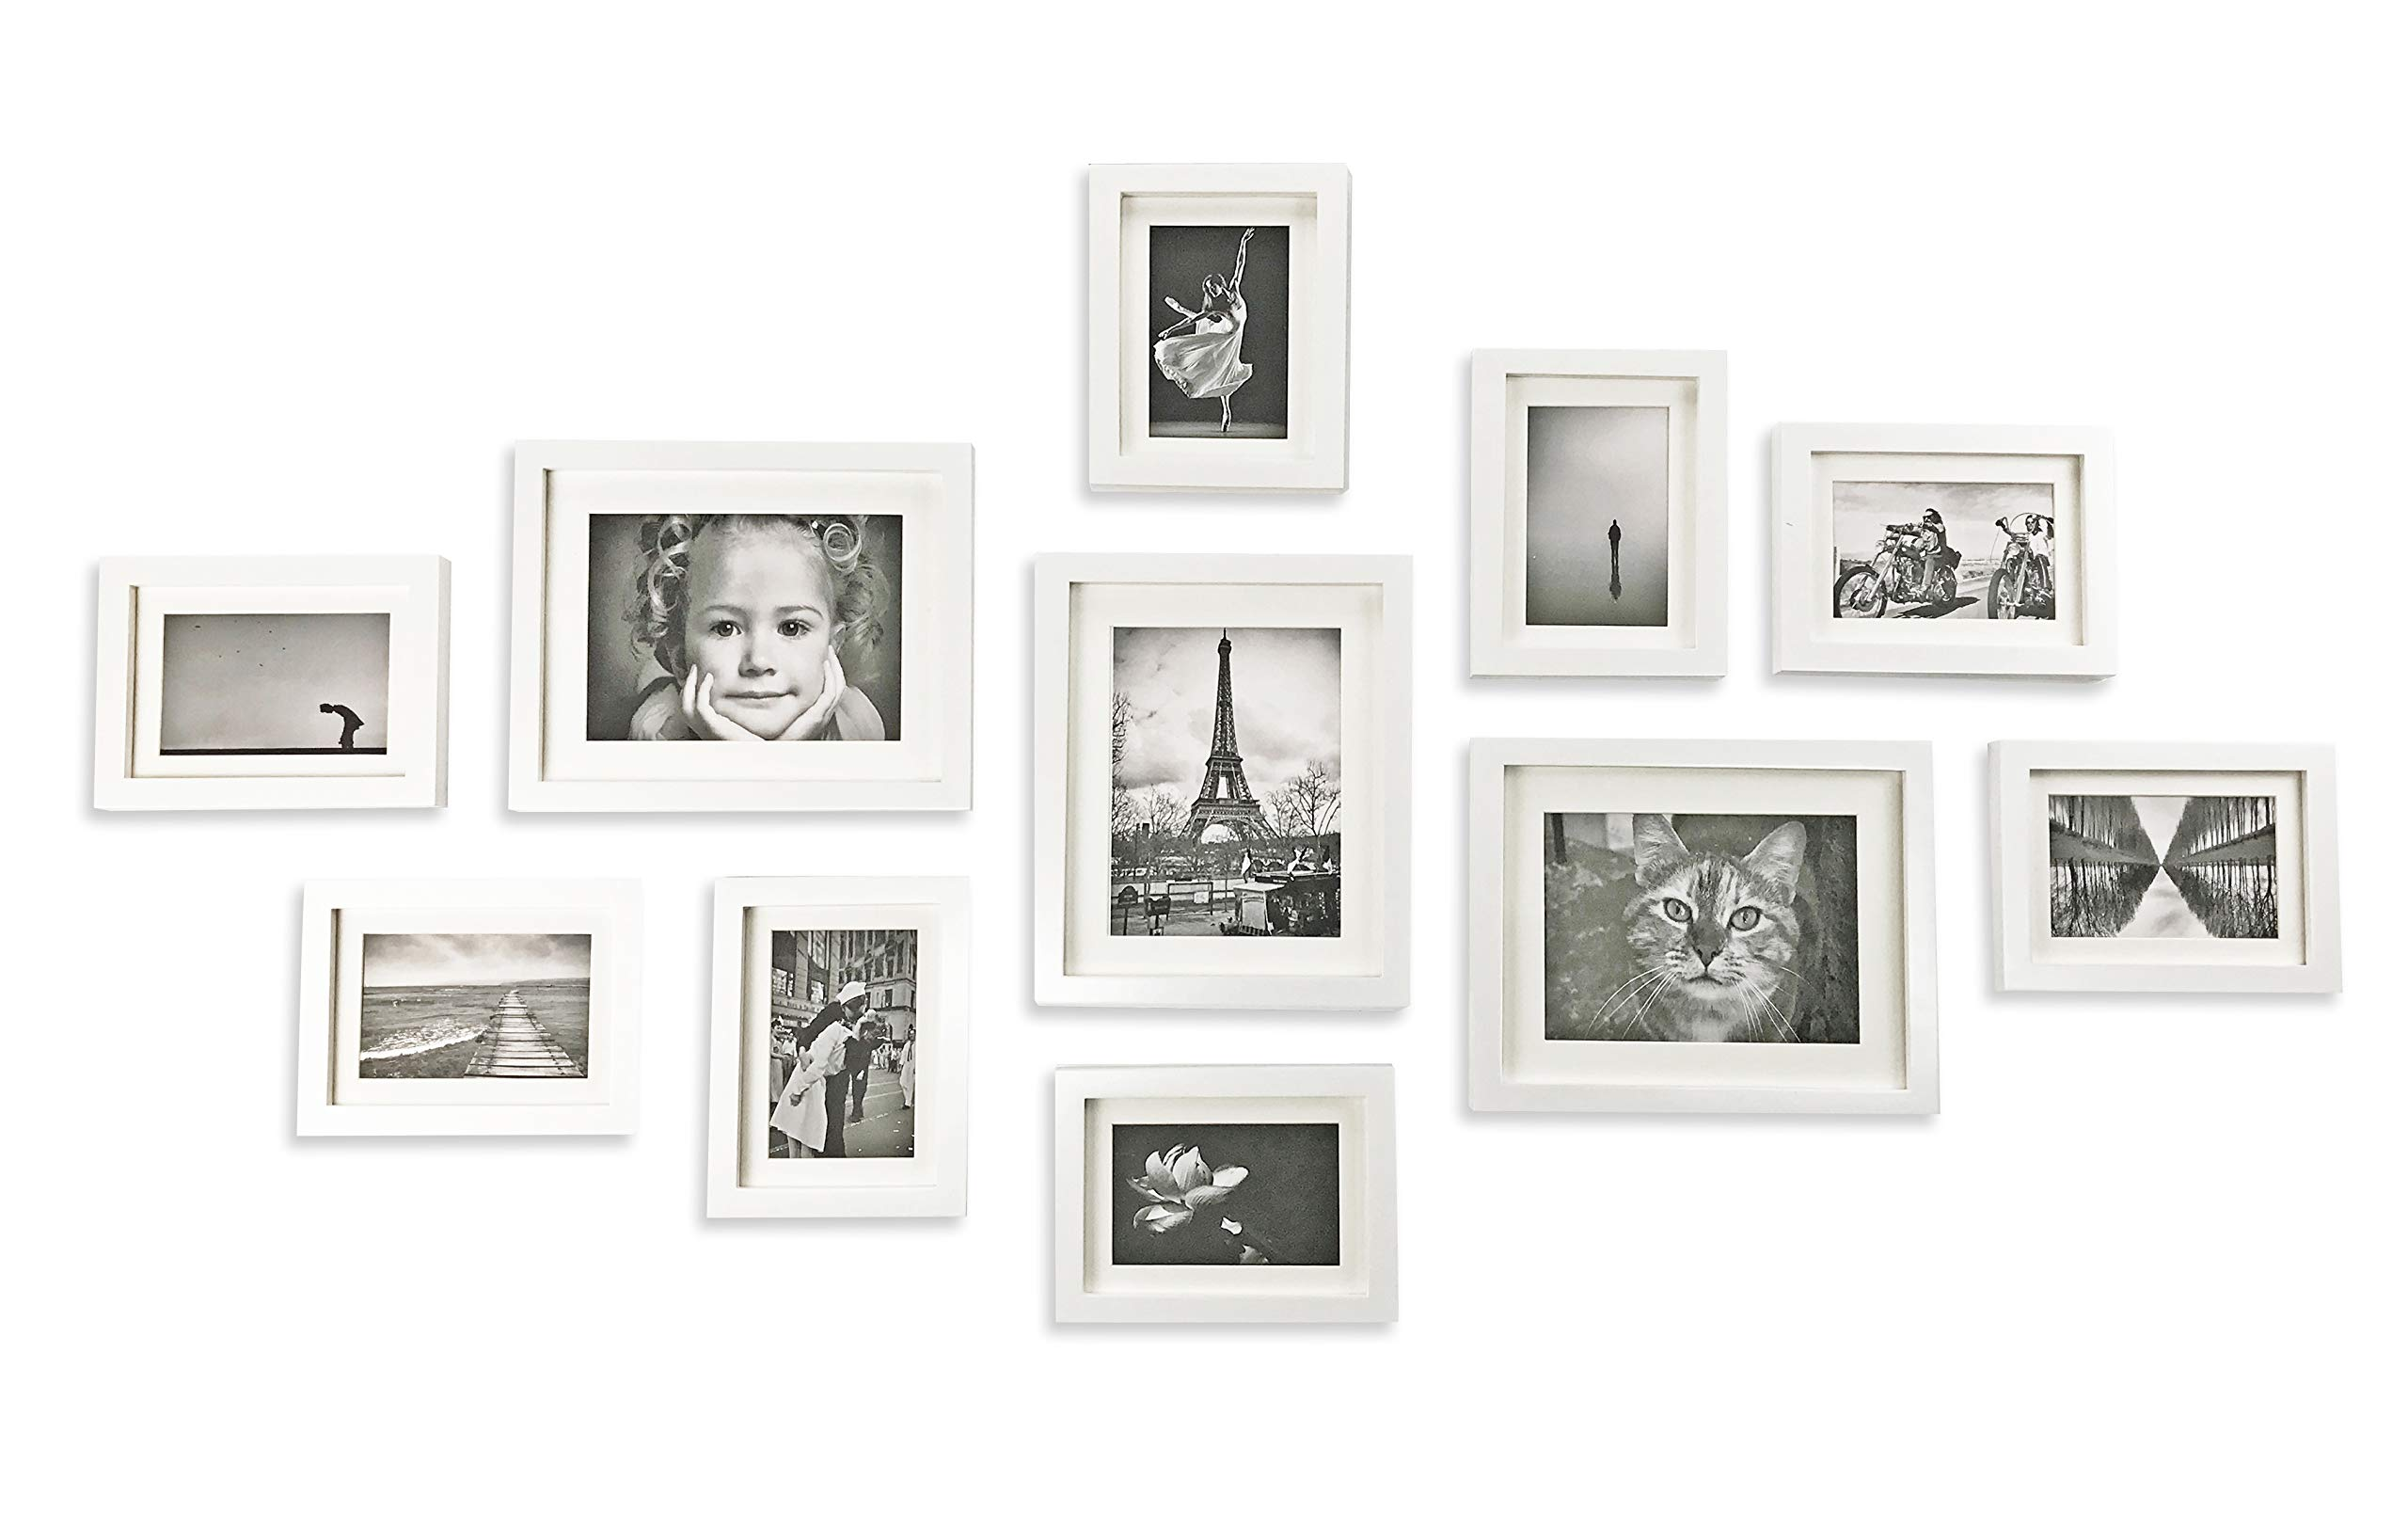 Ray & Chow White Gallery Wall Picture Frames Set- 11 Frames- Solid Wood- Glass Window-Made to Display 8x10 5x7 Pictures Without Mat or 6x8 4x6 Pictures with Mat - Hanging Hardware Included by Ray & Chow